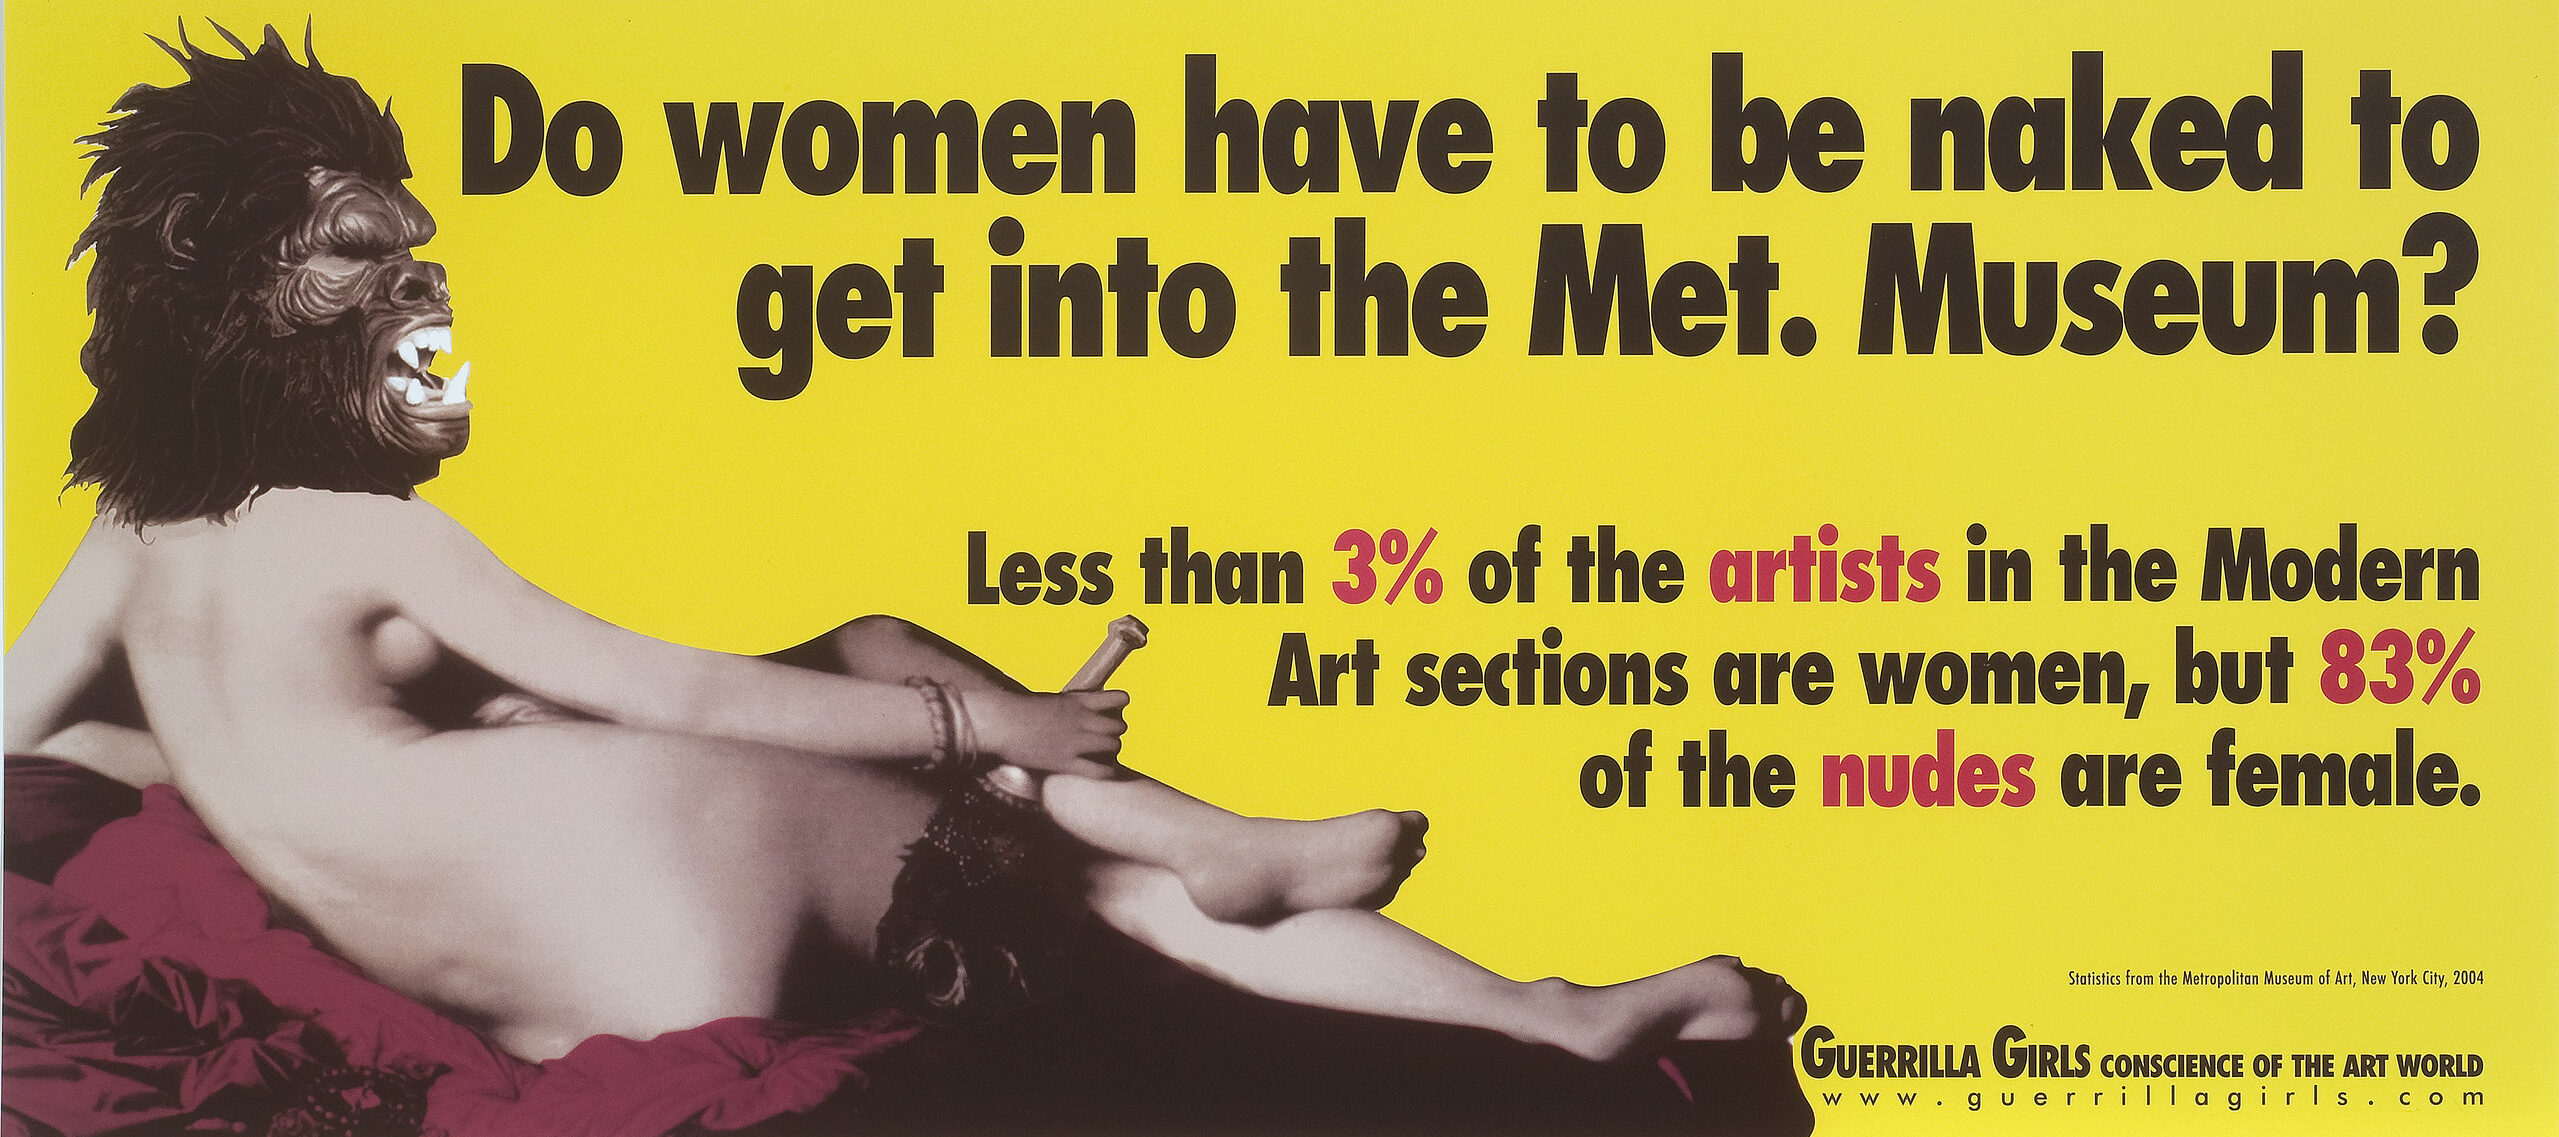 Reclining light skinned nude woman seen from behind wearing a gorilla mask on bright yellow background. Large black text reads,